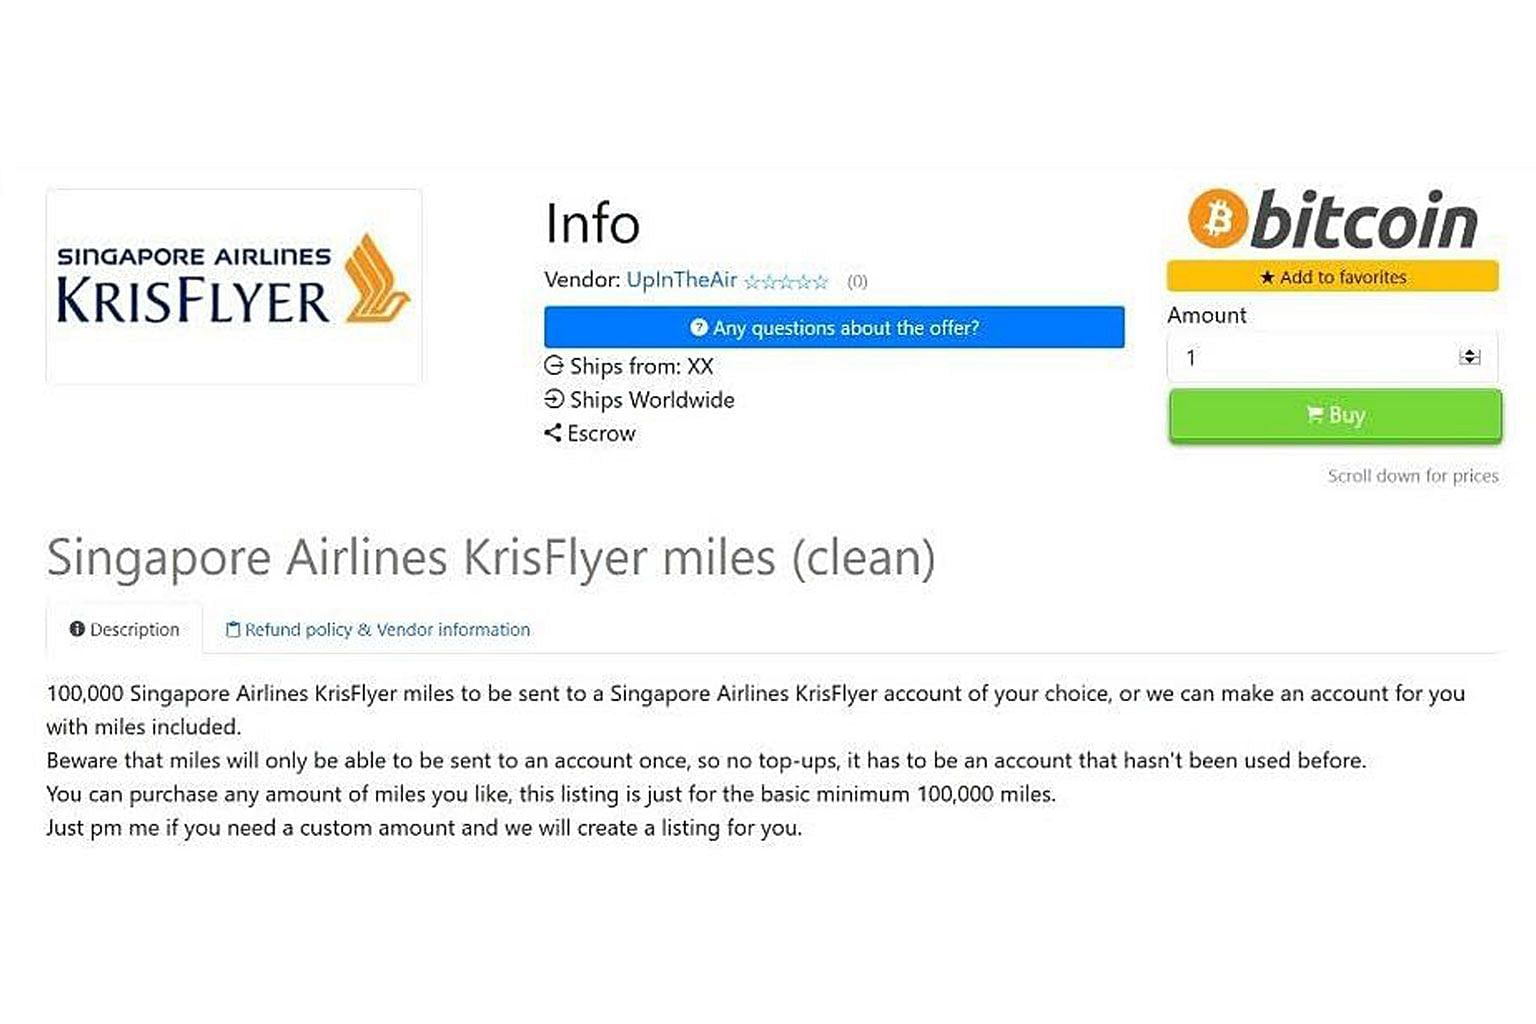 A screen capture of a Dark Web marketplace advertisement selling stolen frequent flier miles. The listings discovered by researchers offer miles for different membership programmes, including those under Singapore Airlines' KrisFlyer programme.